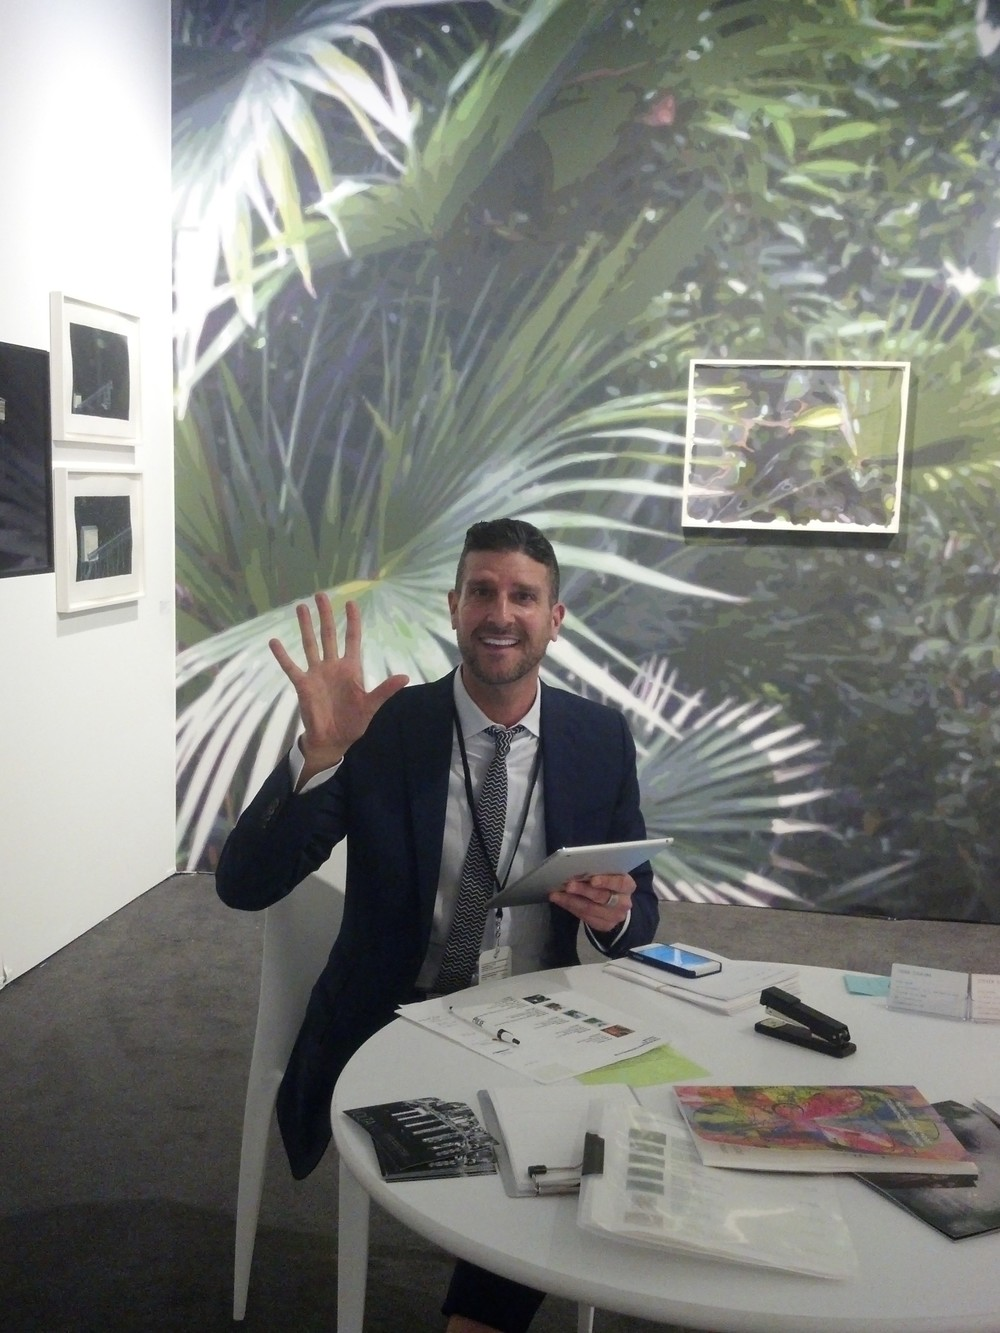 Steven Sergiovanni of Mixed Greens at work in his booth at  PULSE Miami,  featuring a wall installation by Naomi Reis.